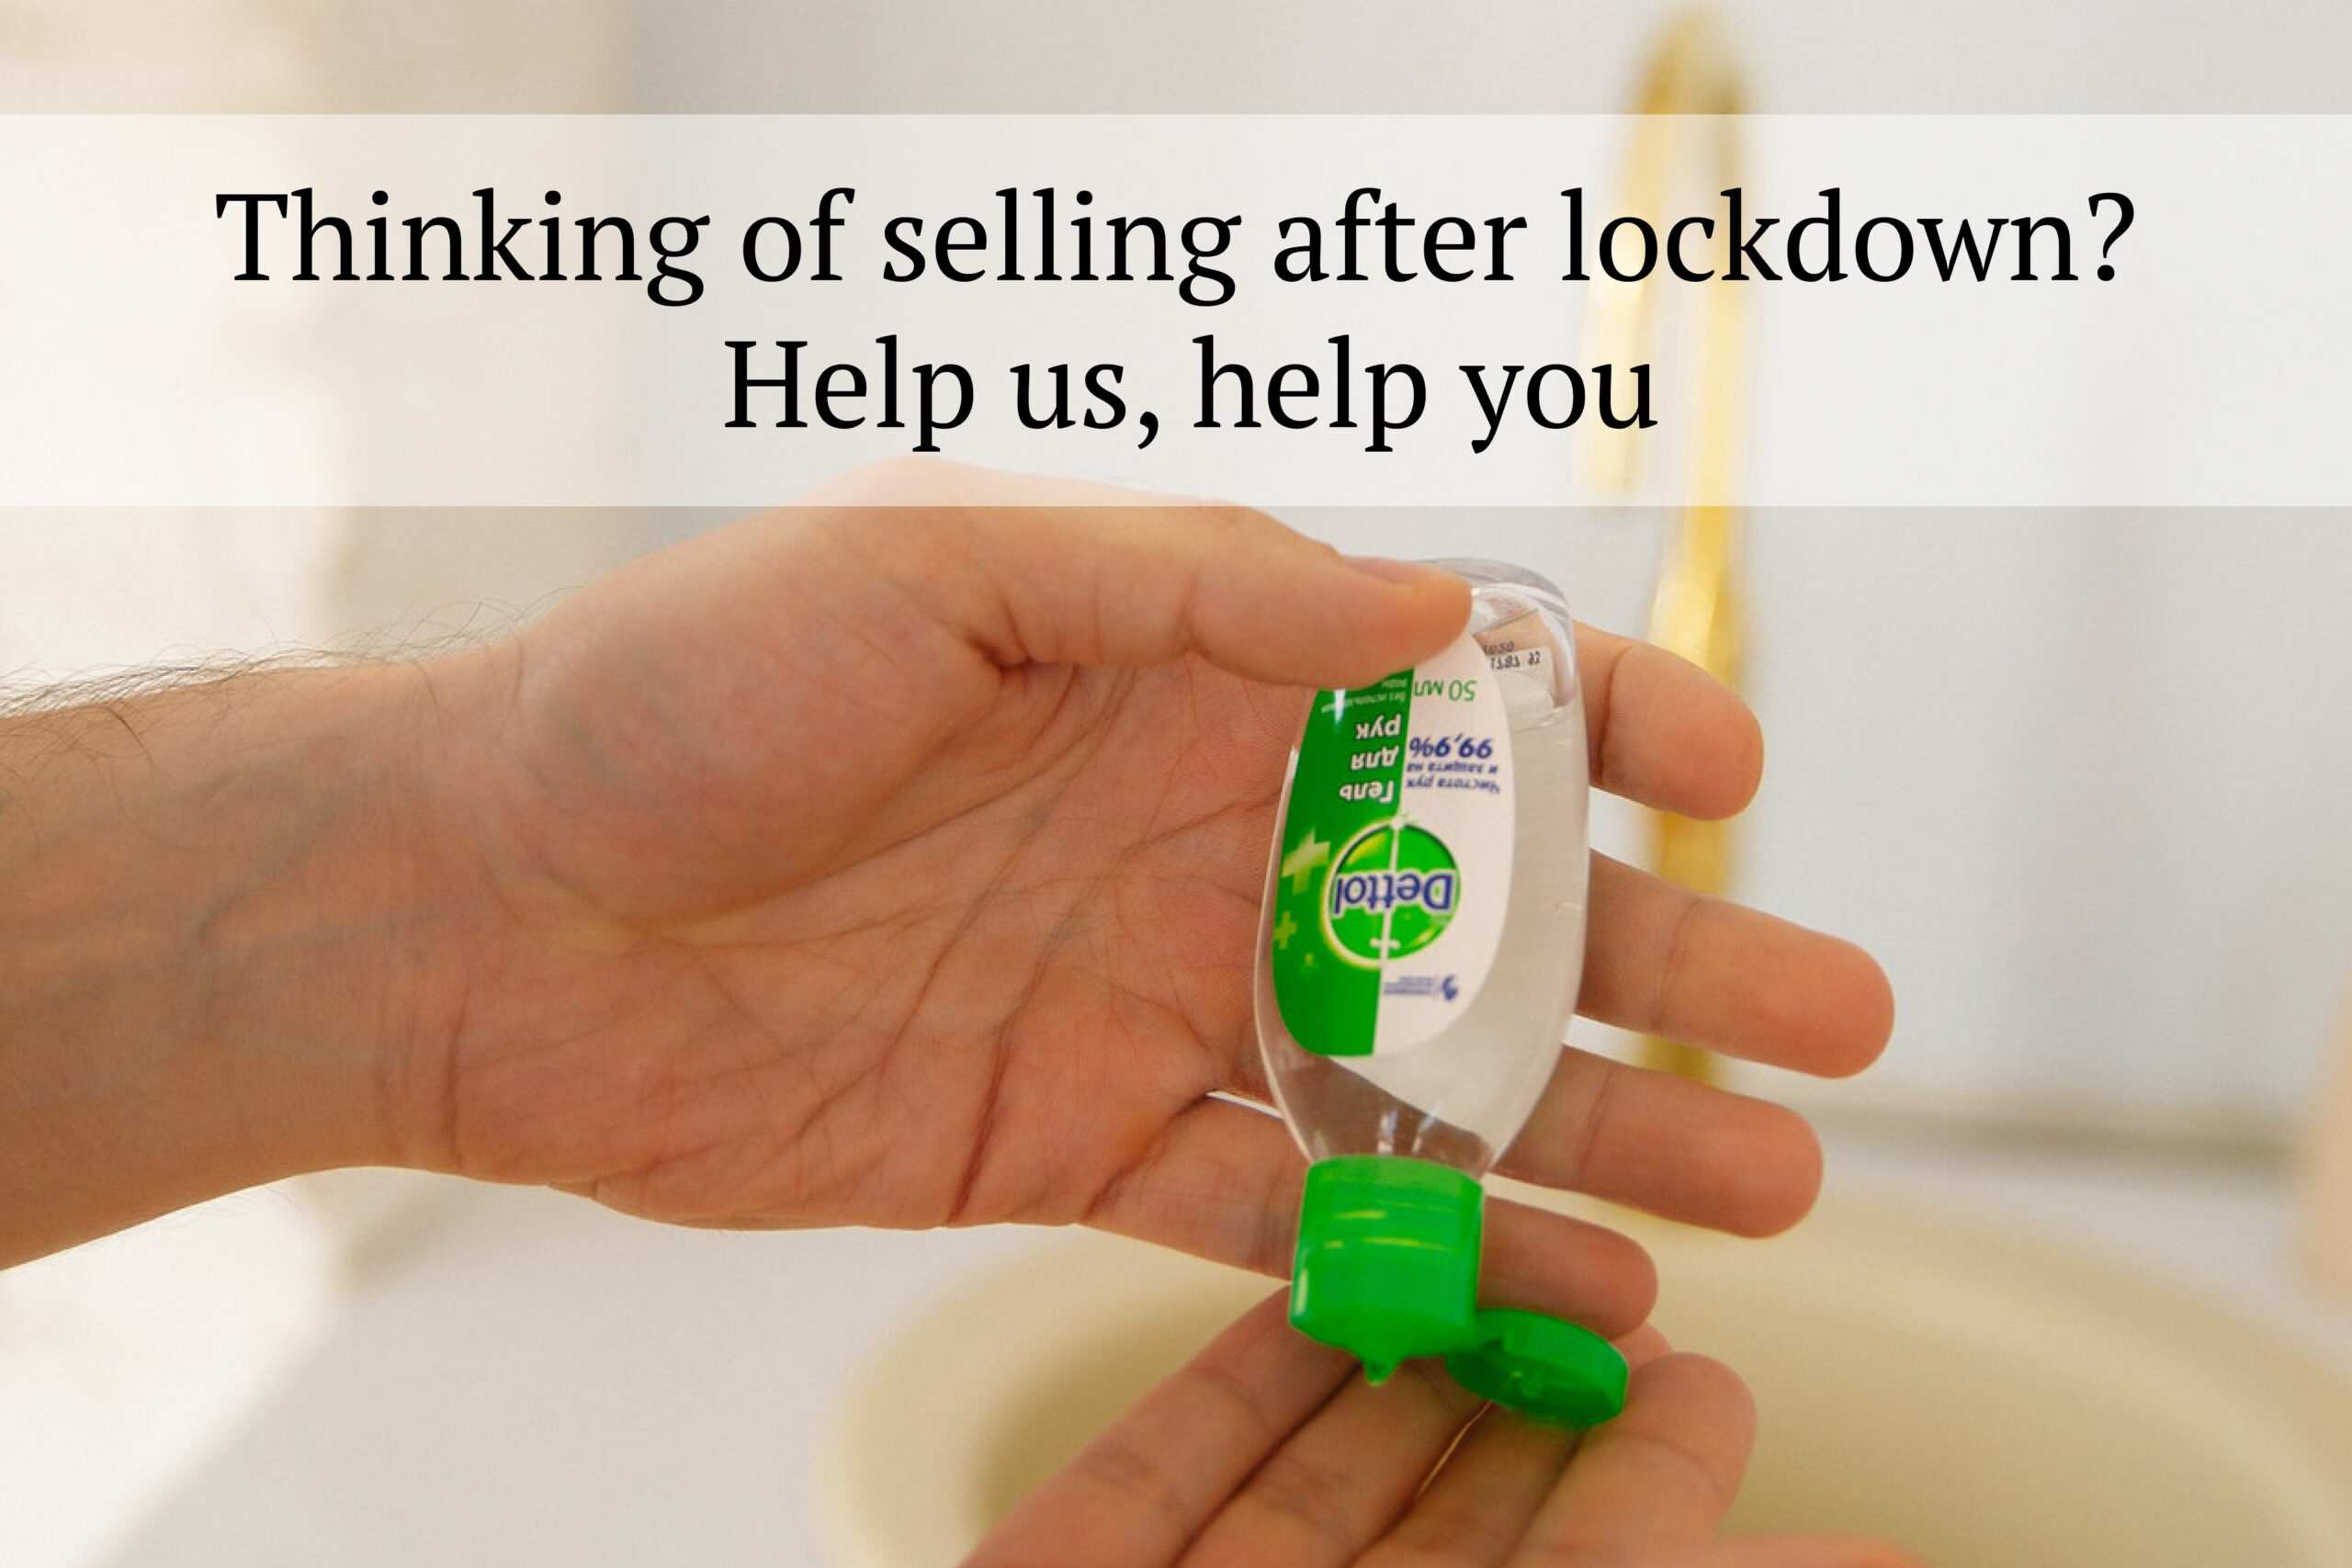 Thinking of selling after lockdown? Help us, help you